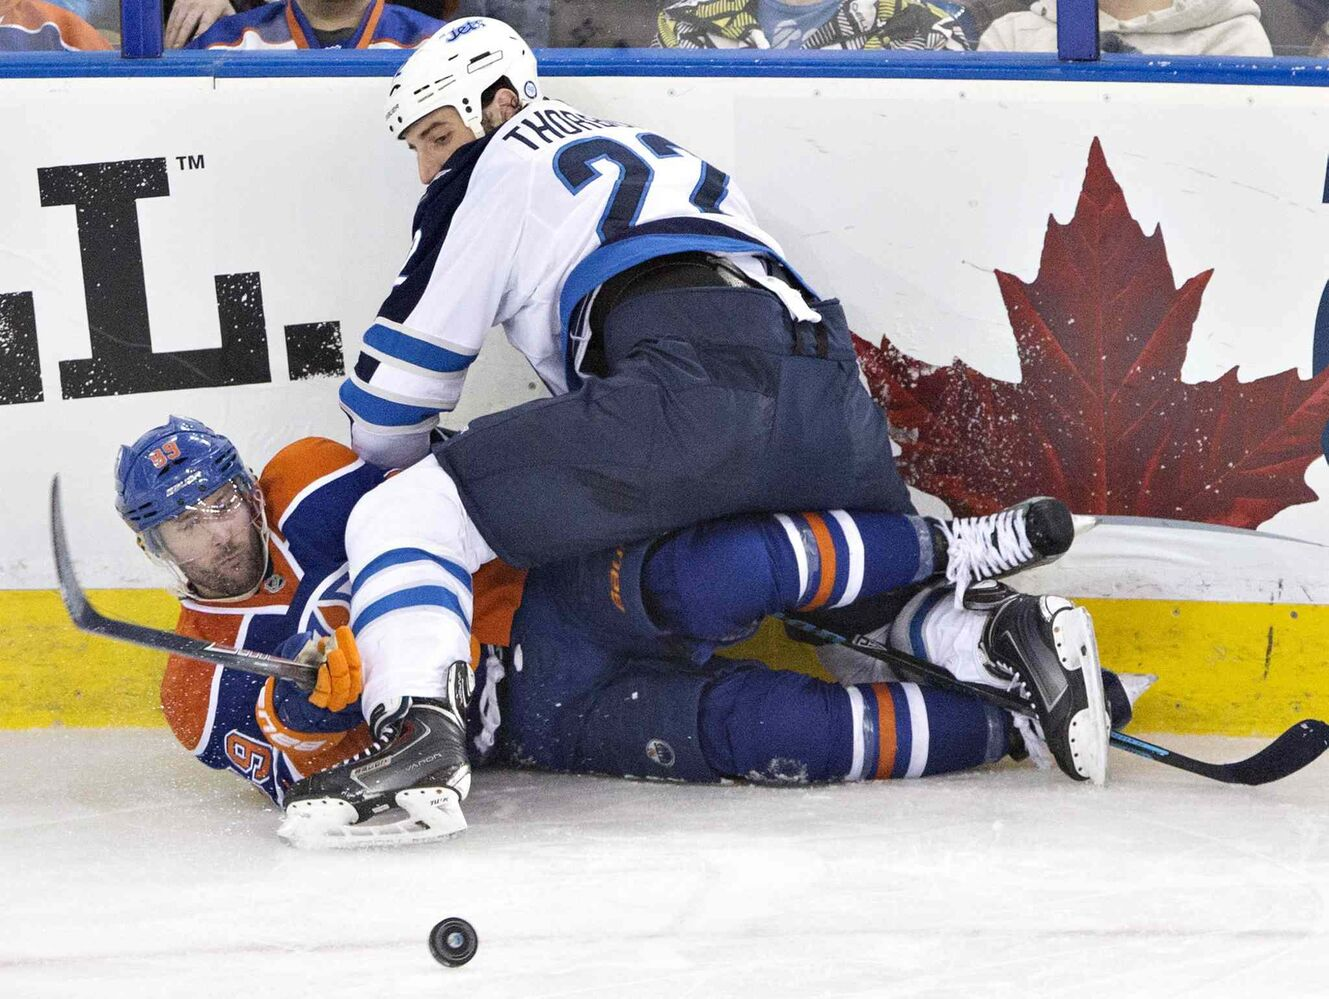 Winnipeg Jets' Eric Tangradi (27) checks Edmonton Oilers' Sam Gagner (89) during the second period on Monday. (Jason Franson / The Canadian Press)